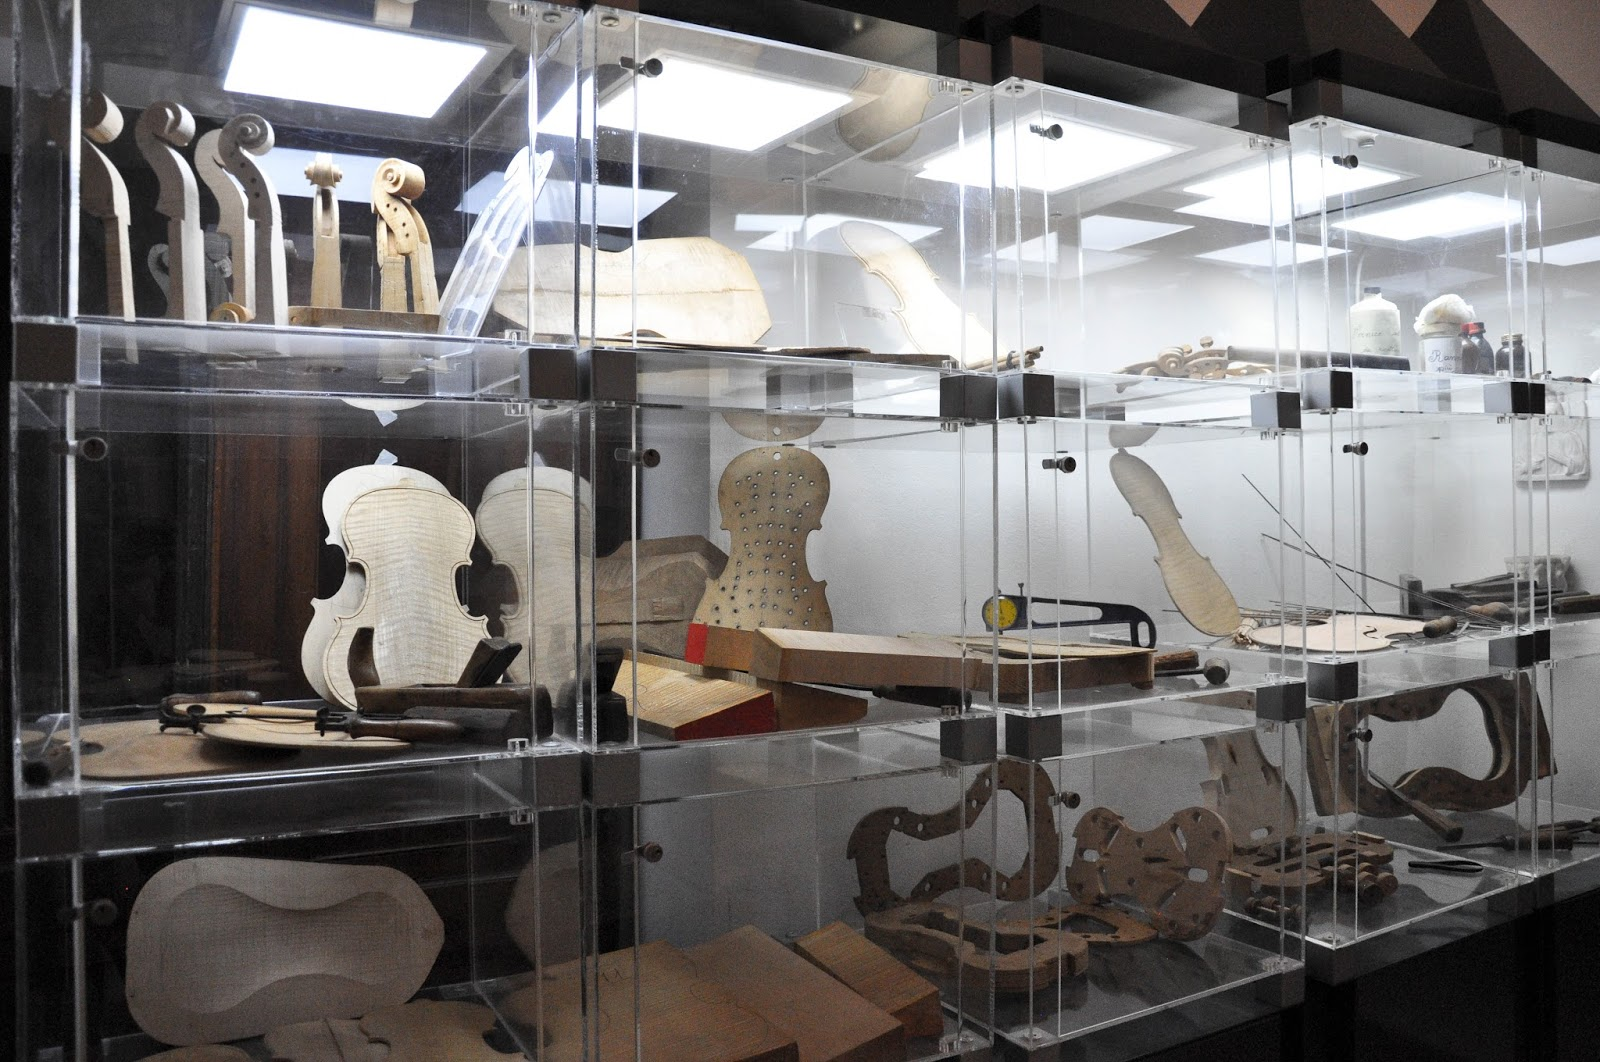 How a violin is made, Exhibit case, Museum of the Music, Venice, Italy